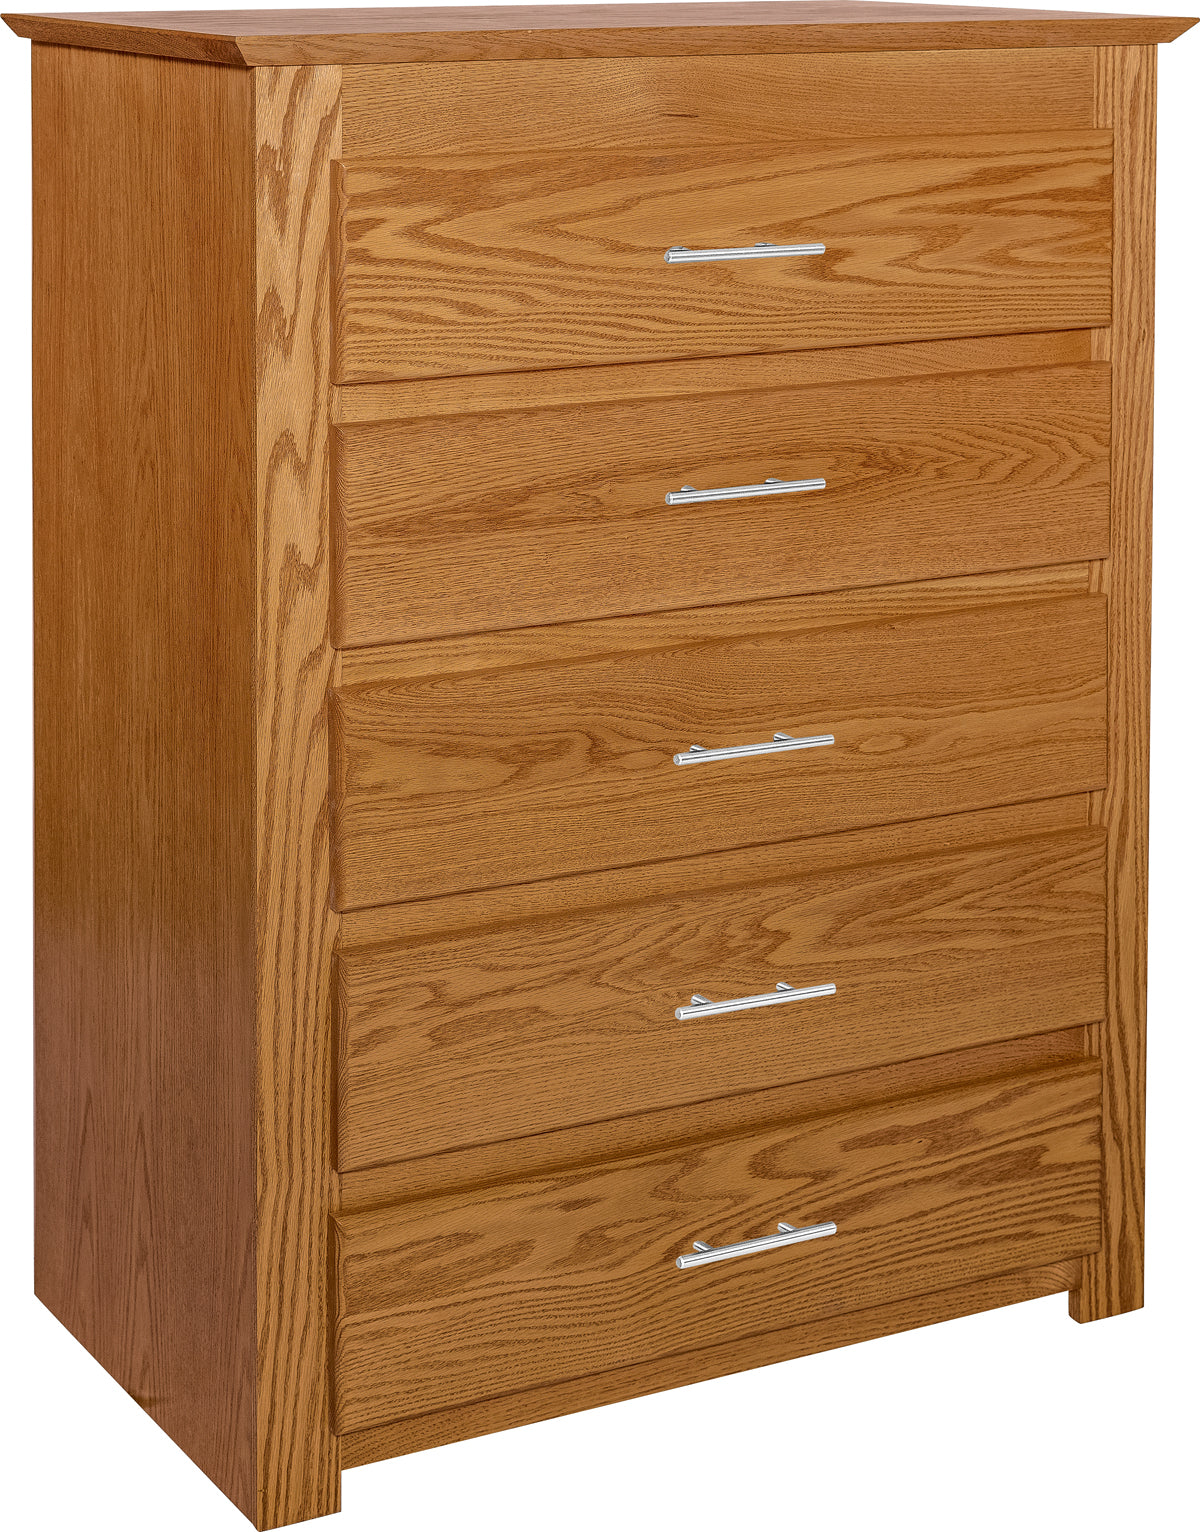 THE CONCORD: Tall Dresser